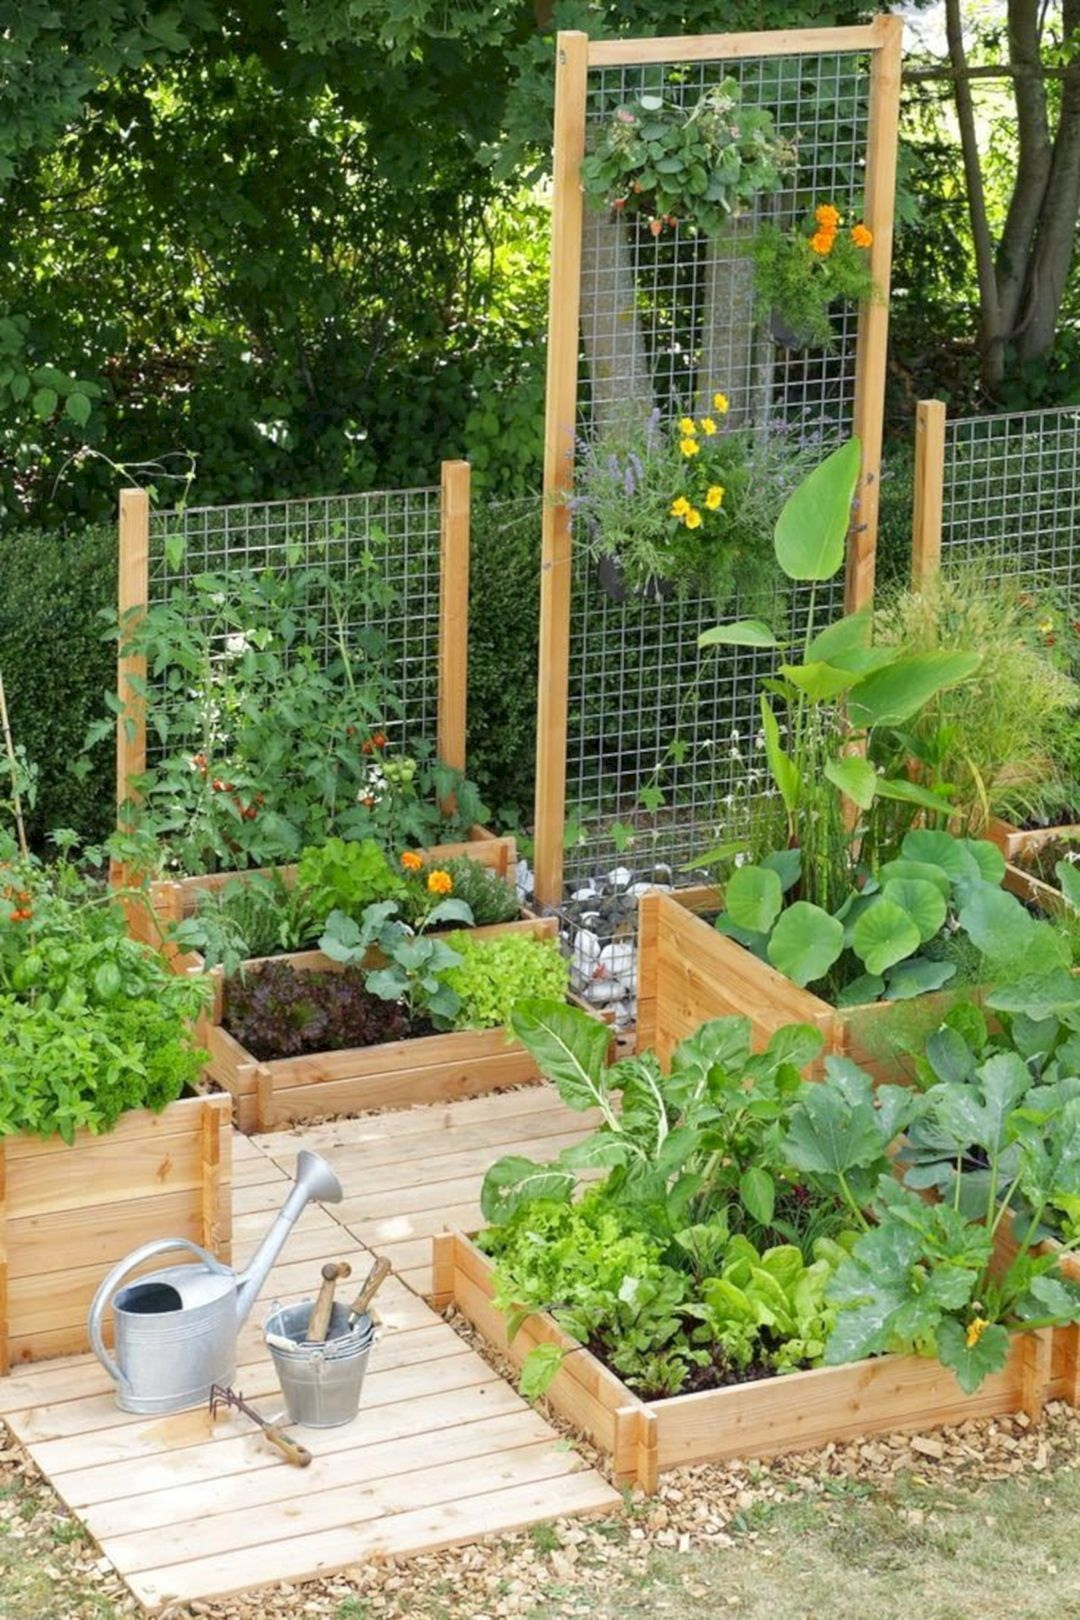 Small Vegetable Gardens Ideas Part - 37: Small Vegetable Garden Ideas